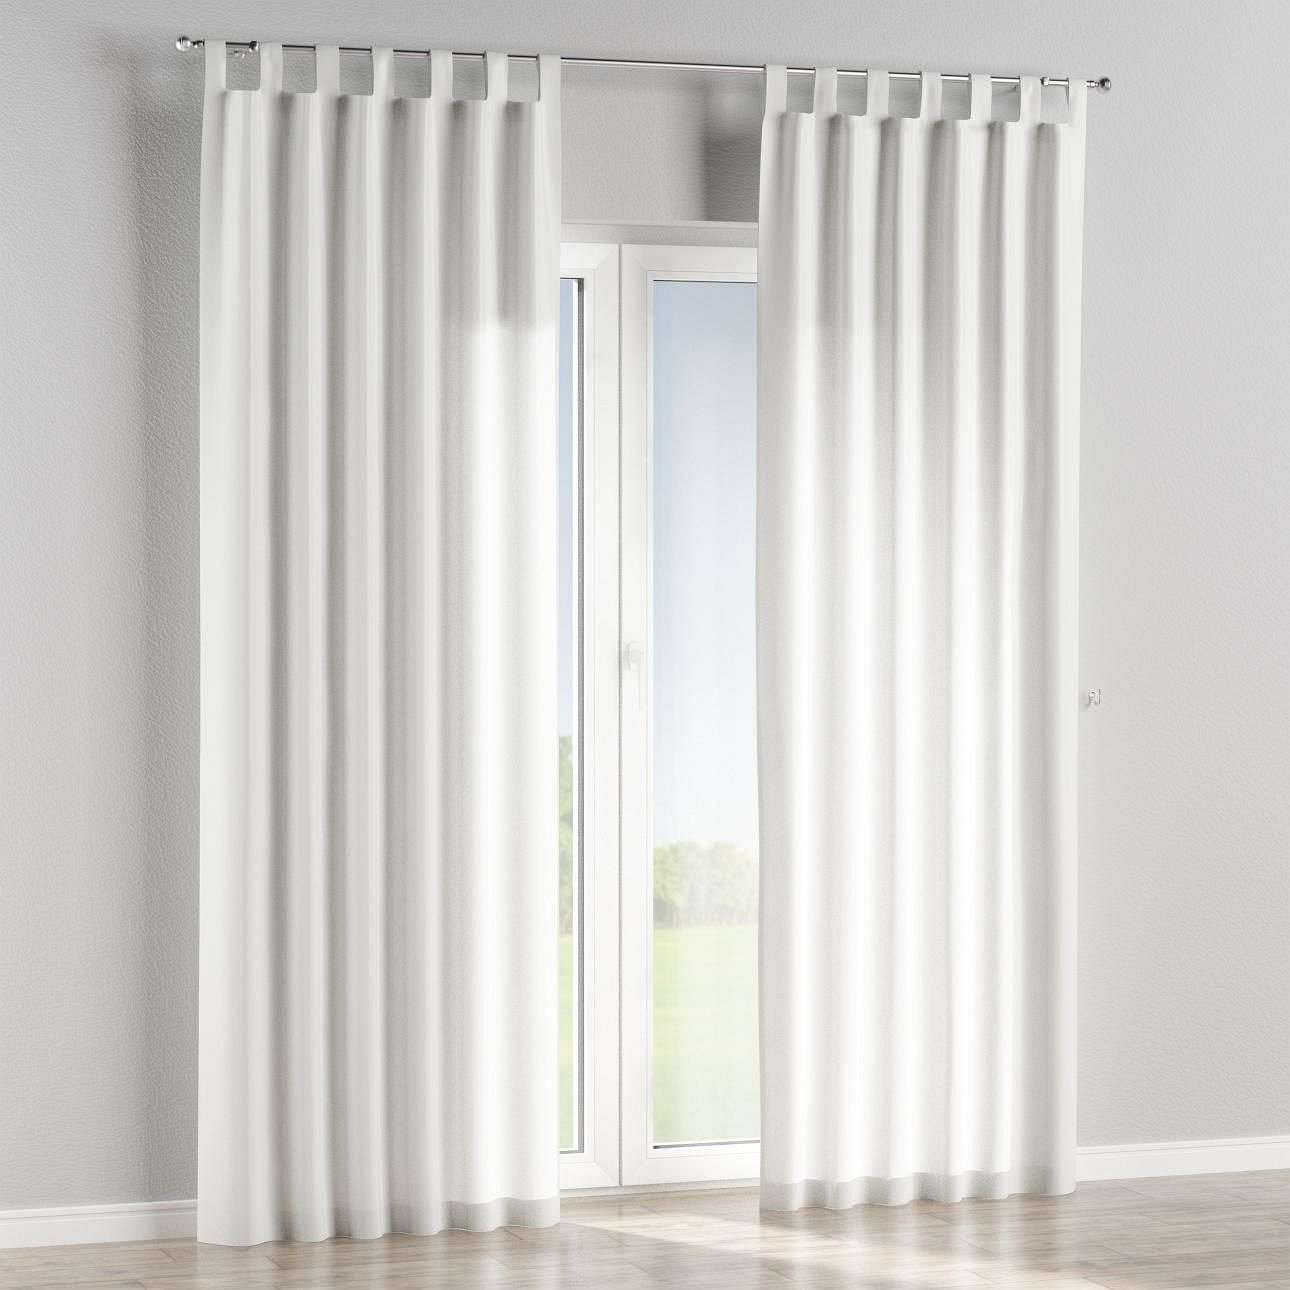 Tab top curtains in collection Milano, fabric: 150-39